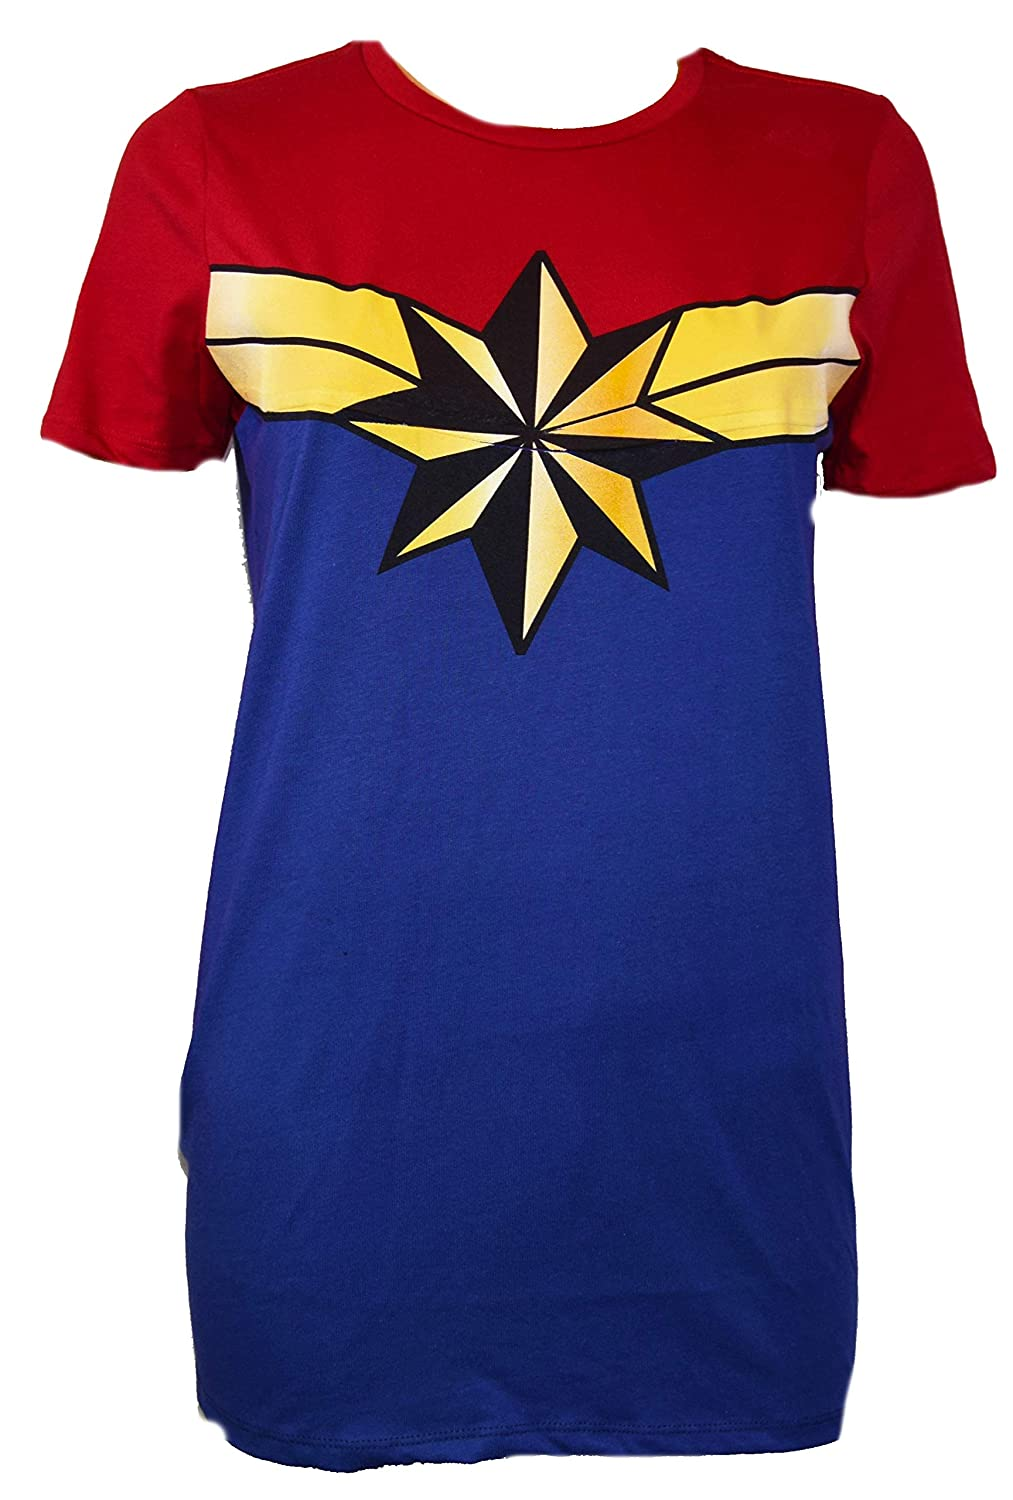 dc72a0a1 Amazon.com: Marvel Captain Marvel Costume Cosplay Tee Graphic Adult T-Shirt:  Clothing